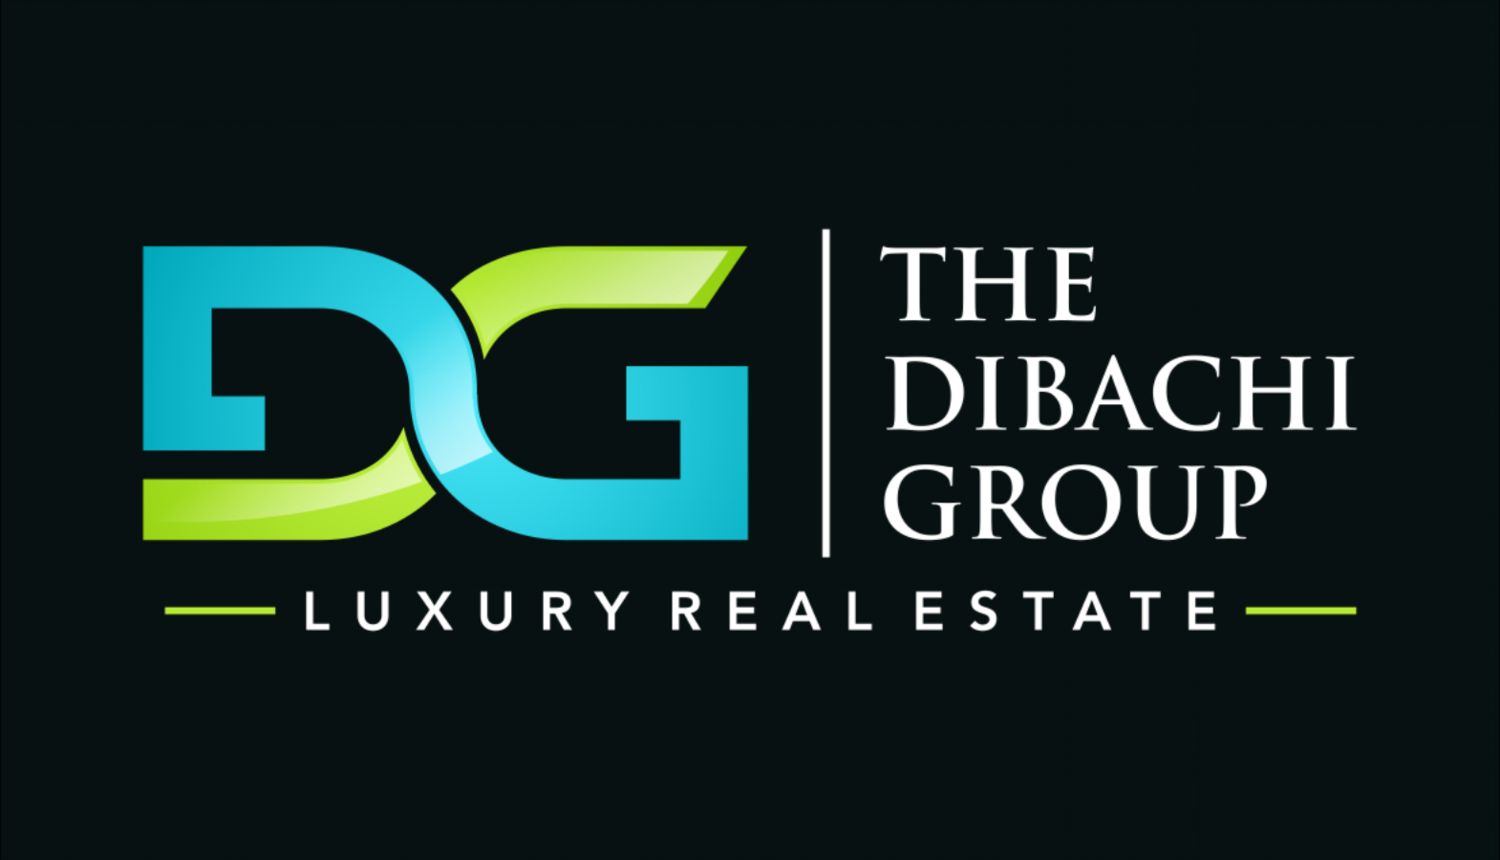 The Dibachi Group